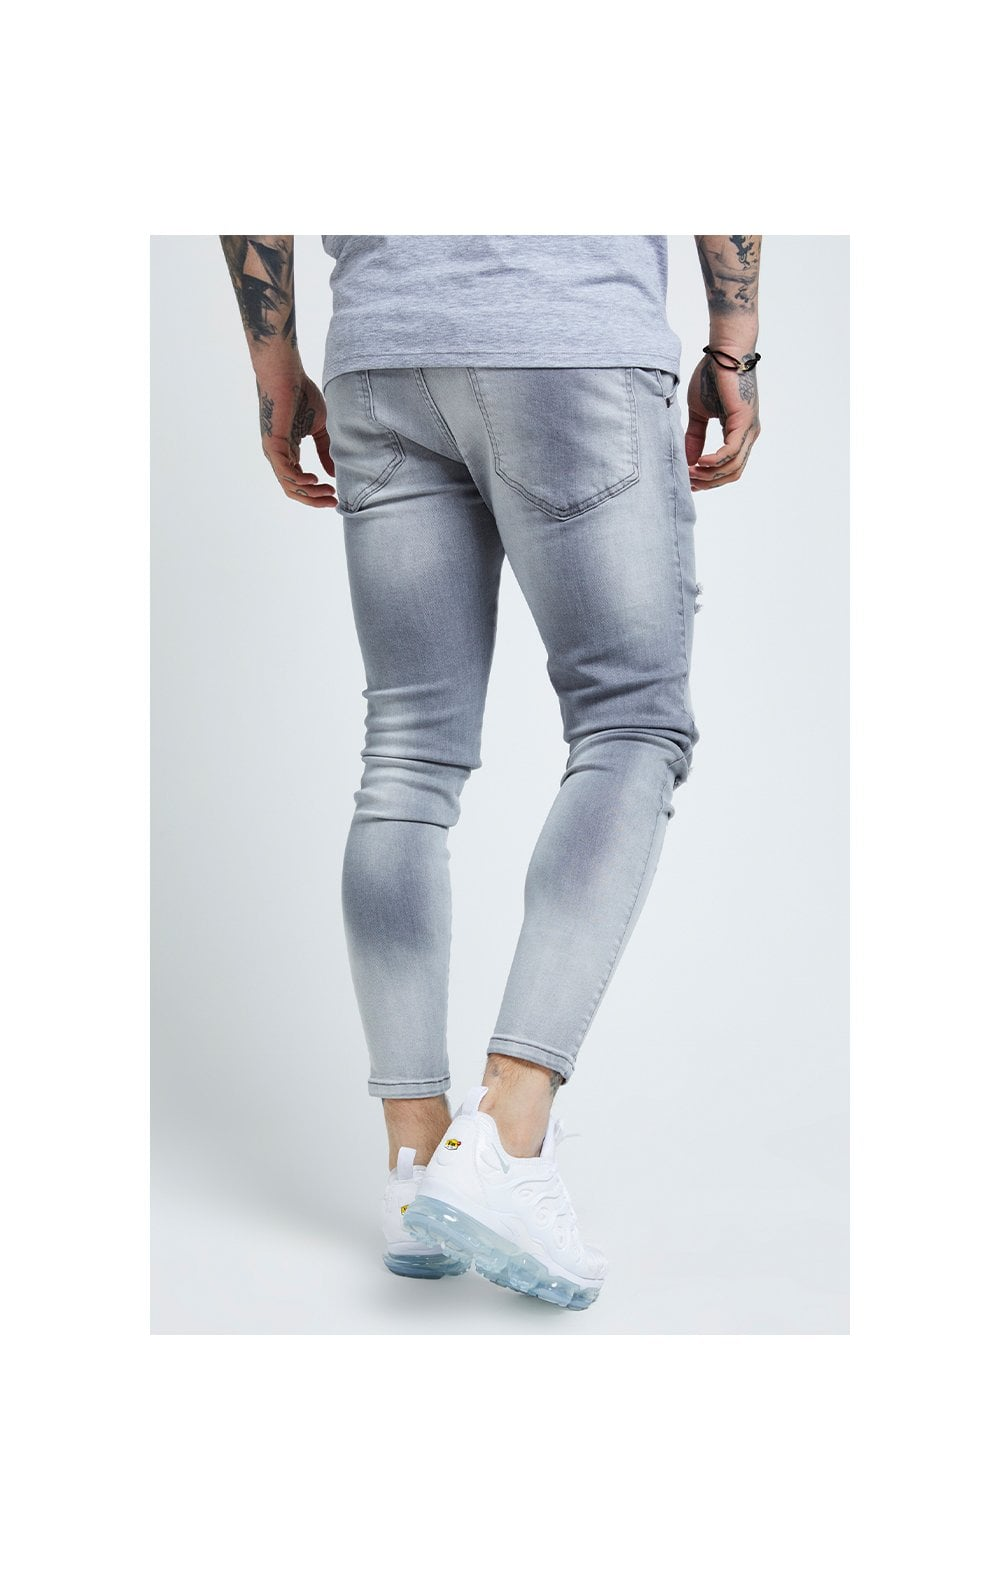 Load image into Gallery viewer, SikSilk Distressed Skinny Jeans – Washed Grey (2)